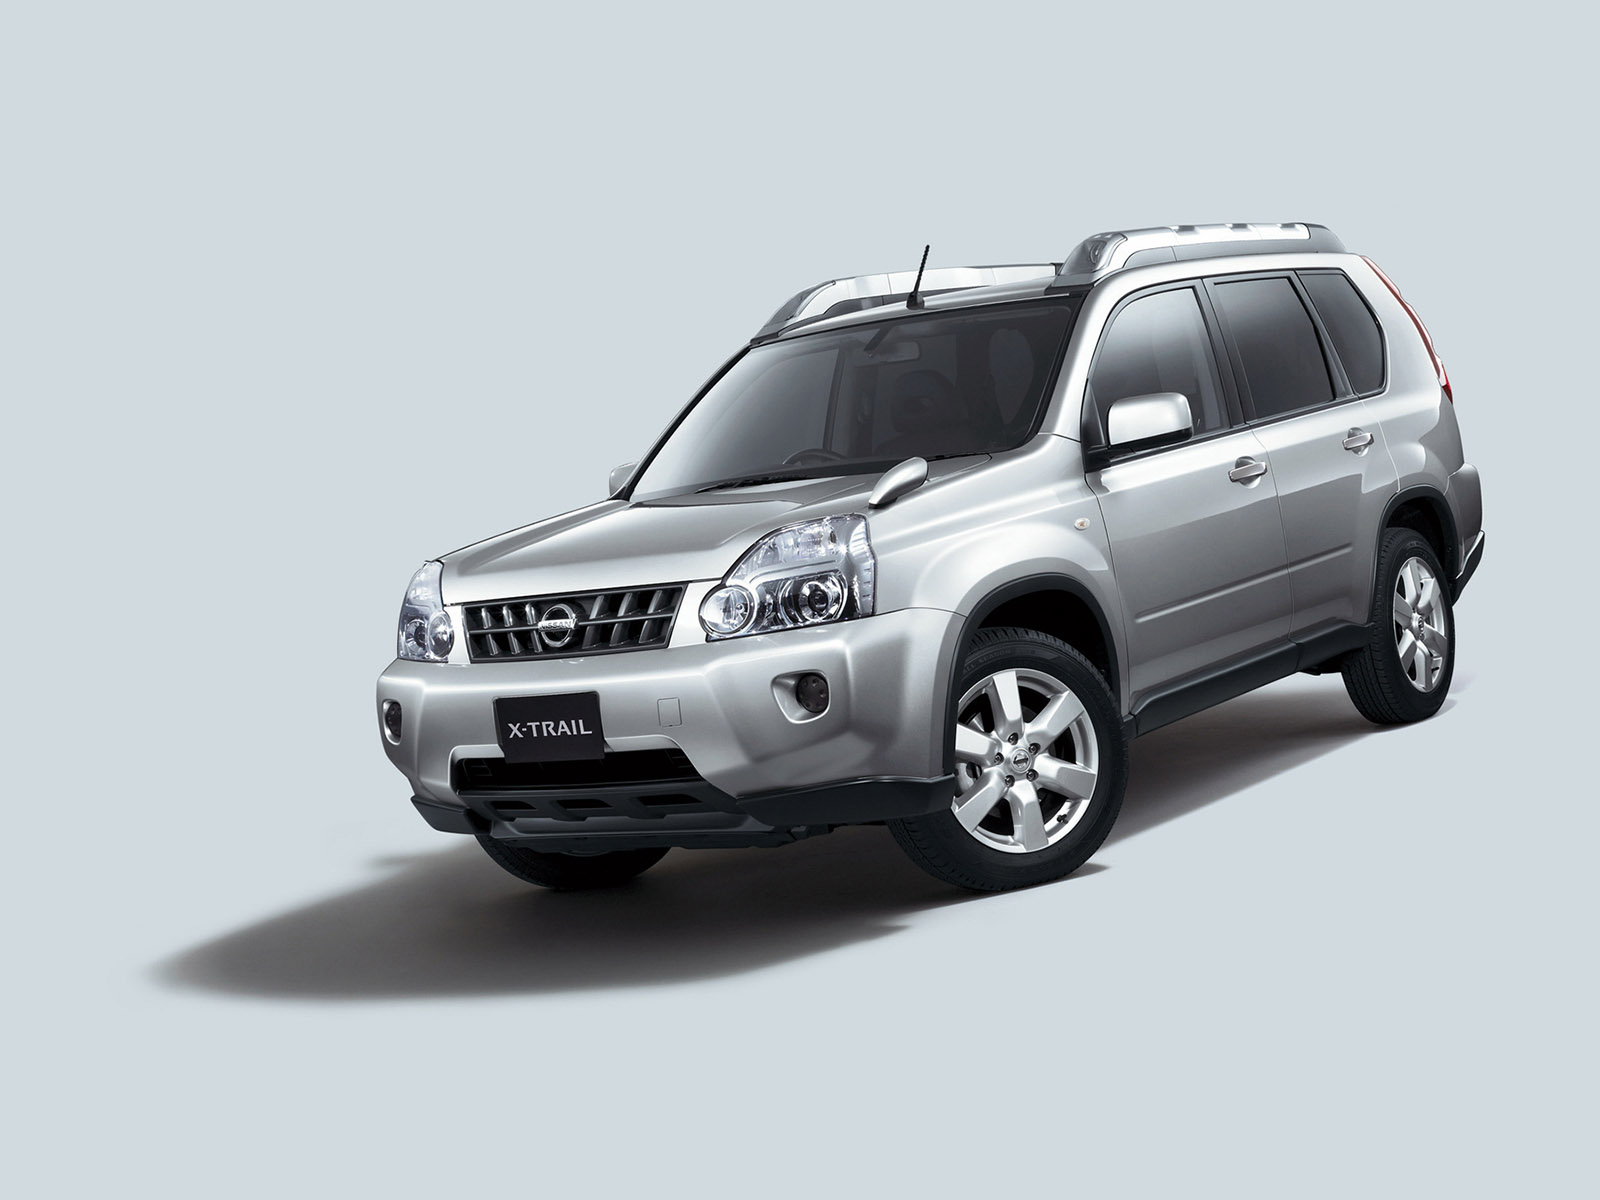 nissan x trail 20gt 2008 nissan x trail 20gt 2008 photo 02 car in pictures car photo gallery. Black Bedroom Furniture Sets. Home Design Ideas